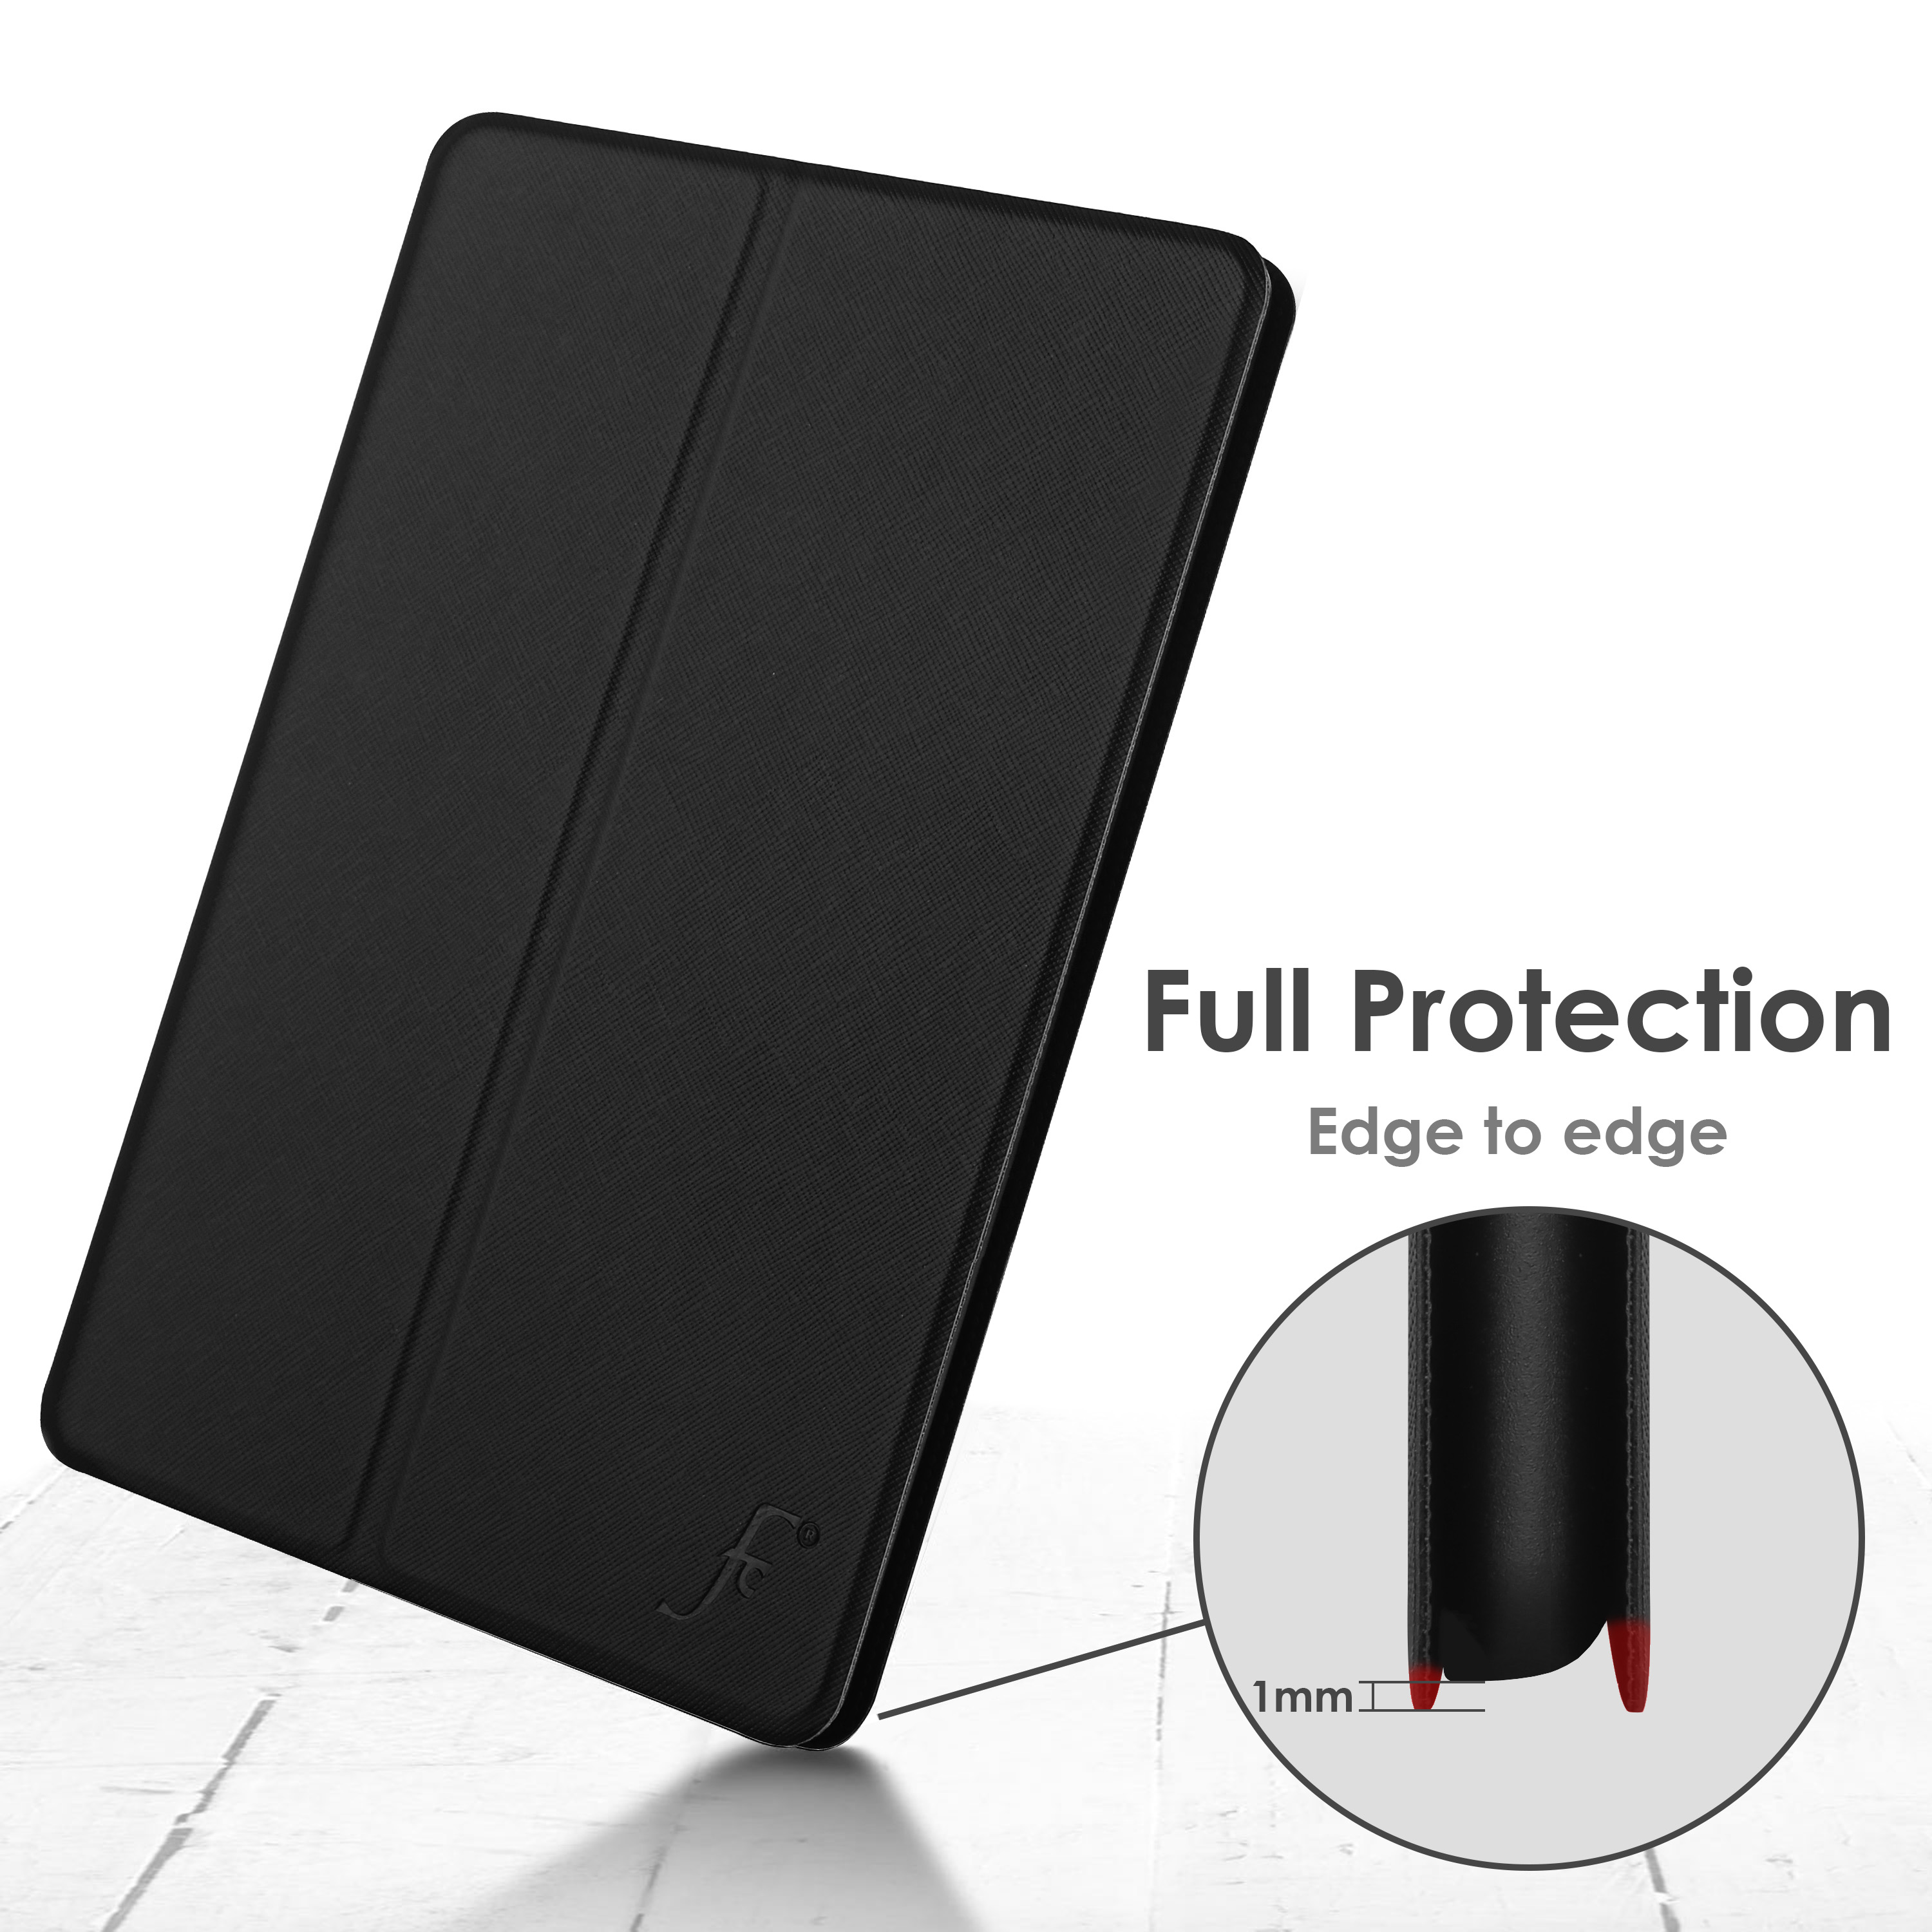 miniature 6 - Samsung Galaxy Tab A 10.1 2019 Étui Magnétique Protection & Support + Stylet